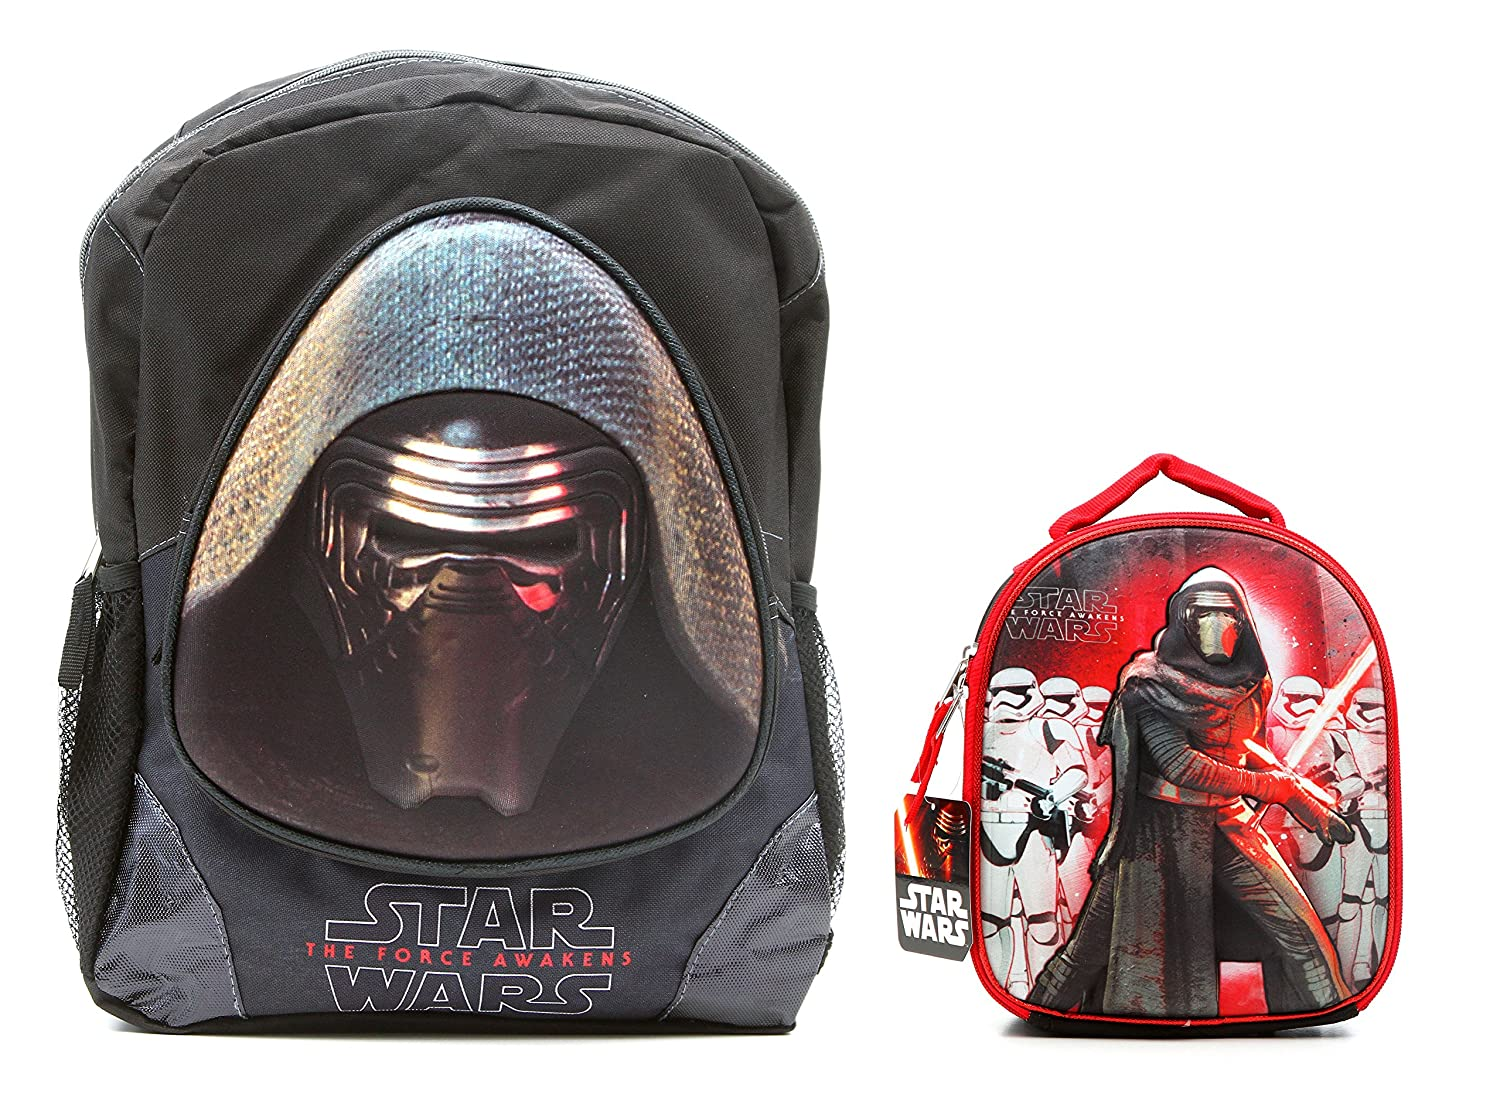 Kylo Ren Star Wars The Force Awakens 3D Backpack and Lunch Bag Box Combo   B06X6BTZM2